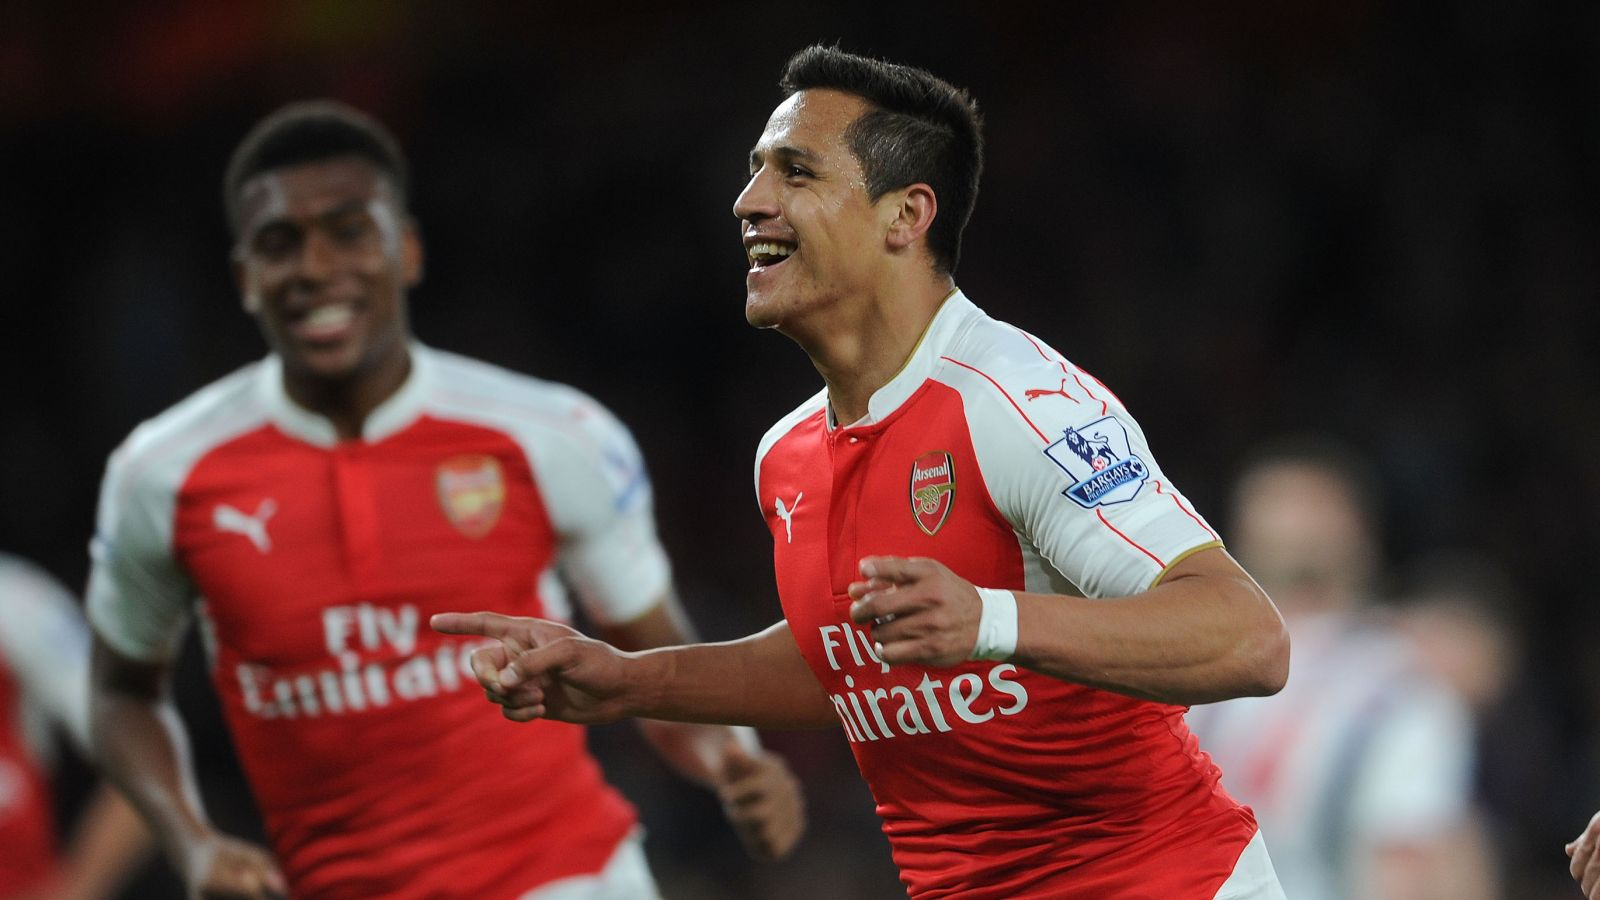 Sanchez's injury layoff cost Arsenal title shot, says Mertesacker